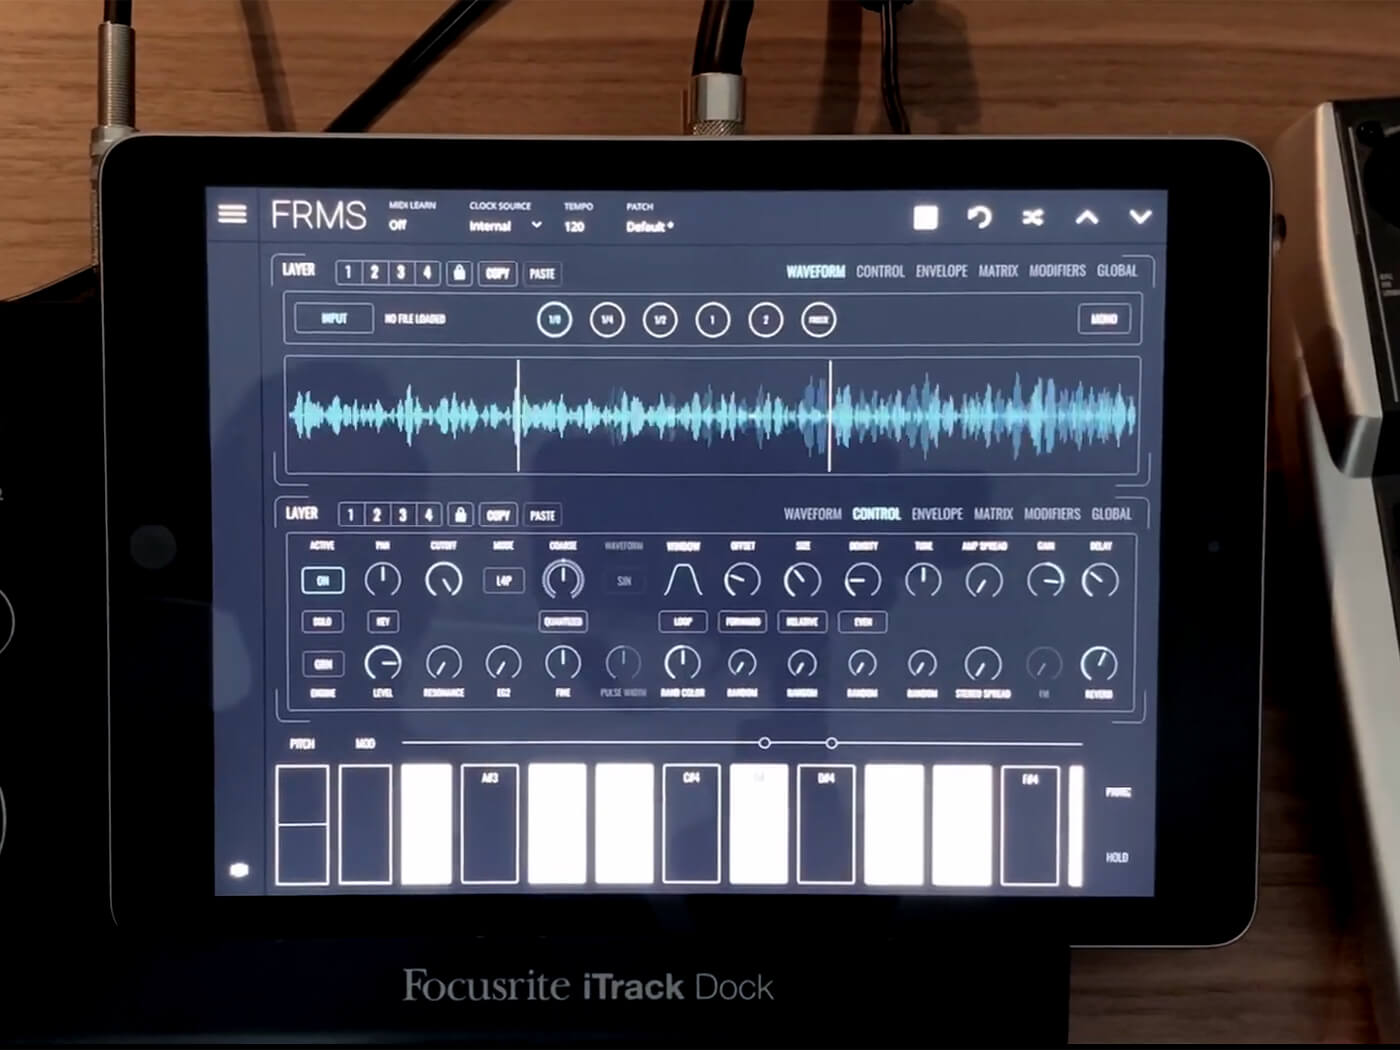 FRMS rolls granular, subtractive and FM synthesis into one synth plug-in - MusicTech